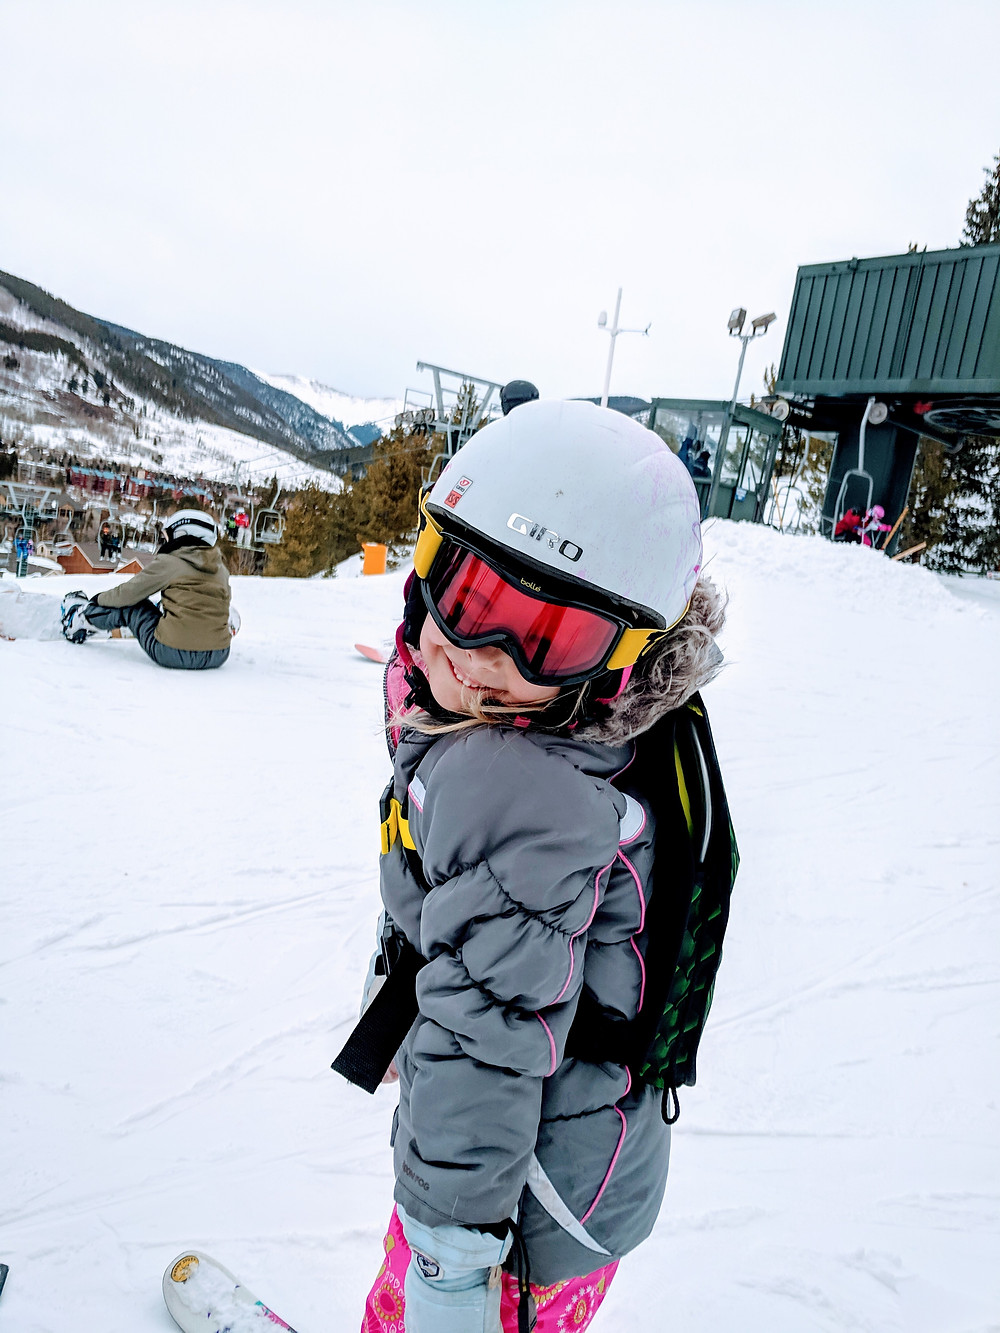 Child in Kideaux Dragon Ski Safety Pack ready for ski chair lift